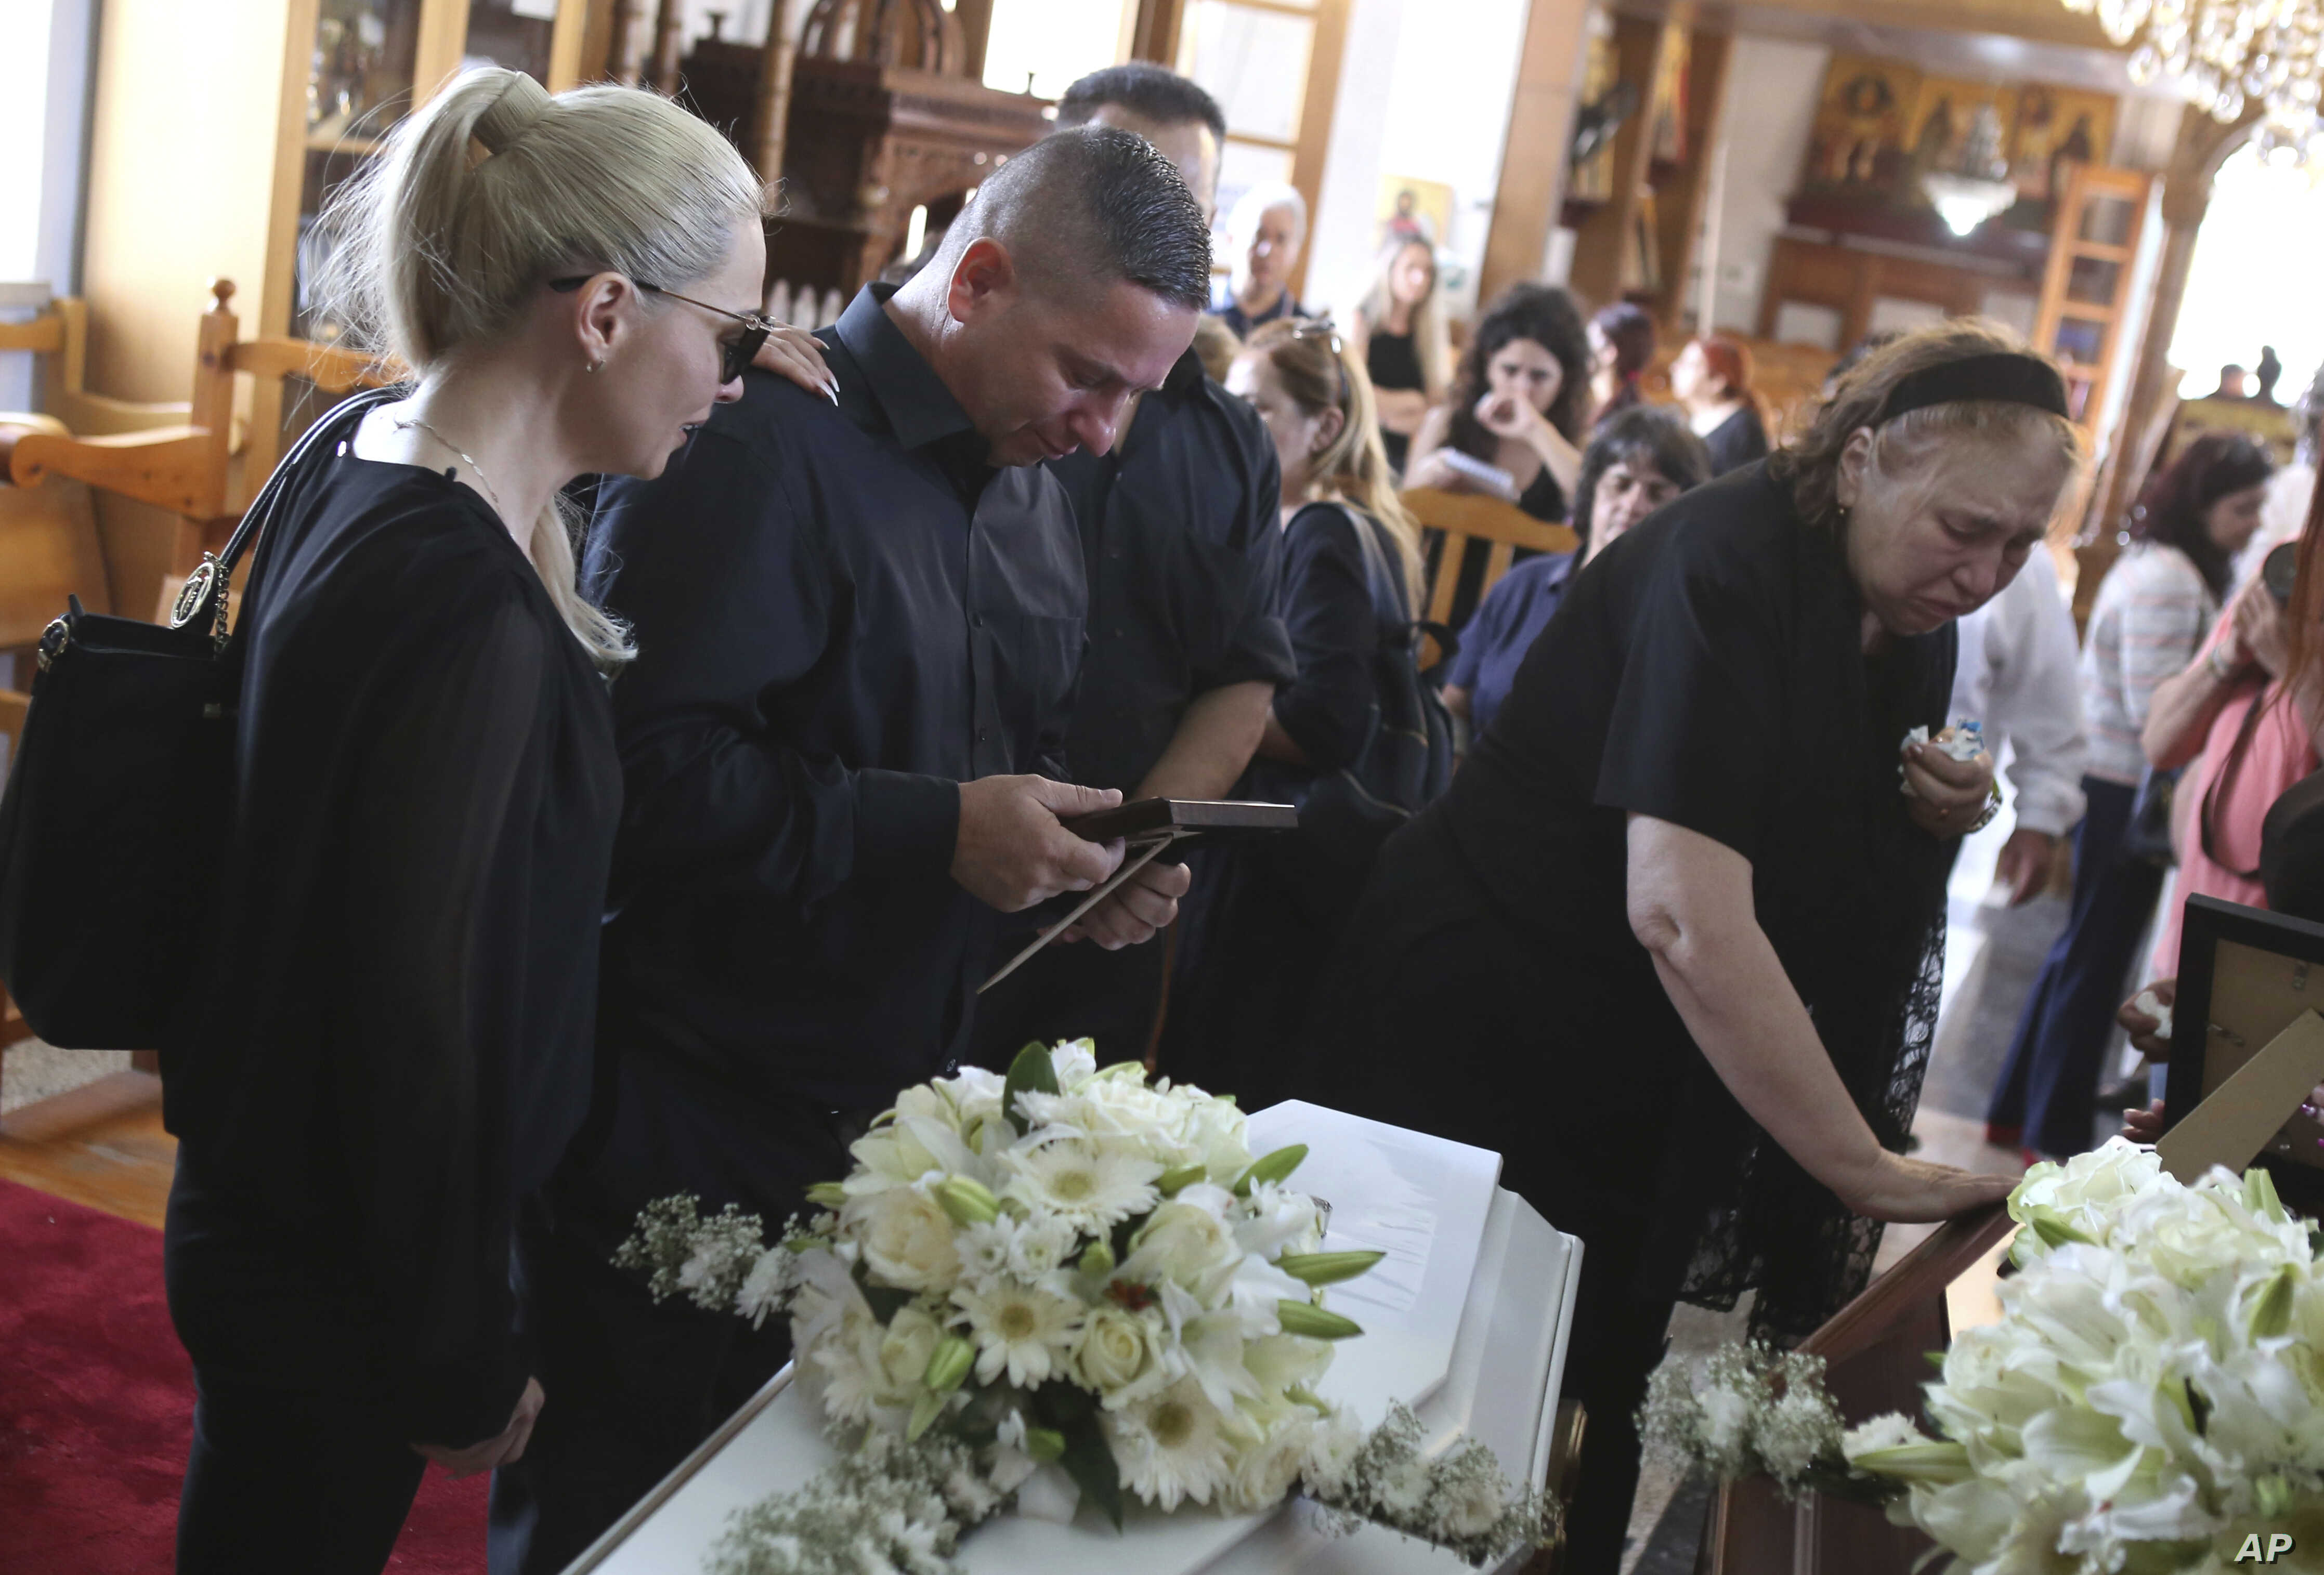 Relatives mourn in Arediou, Cyprus,  June 13, 2019, for two suspected victims of a serial killer.